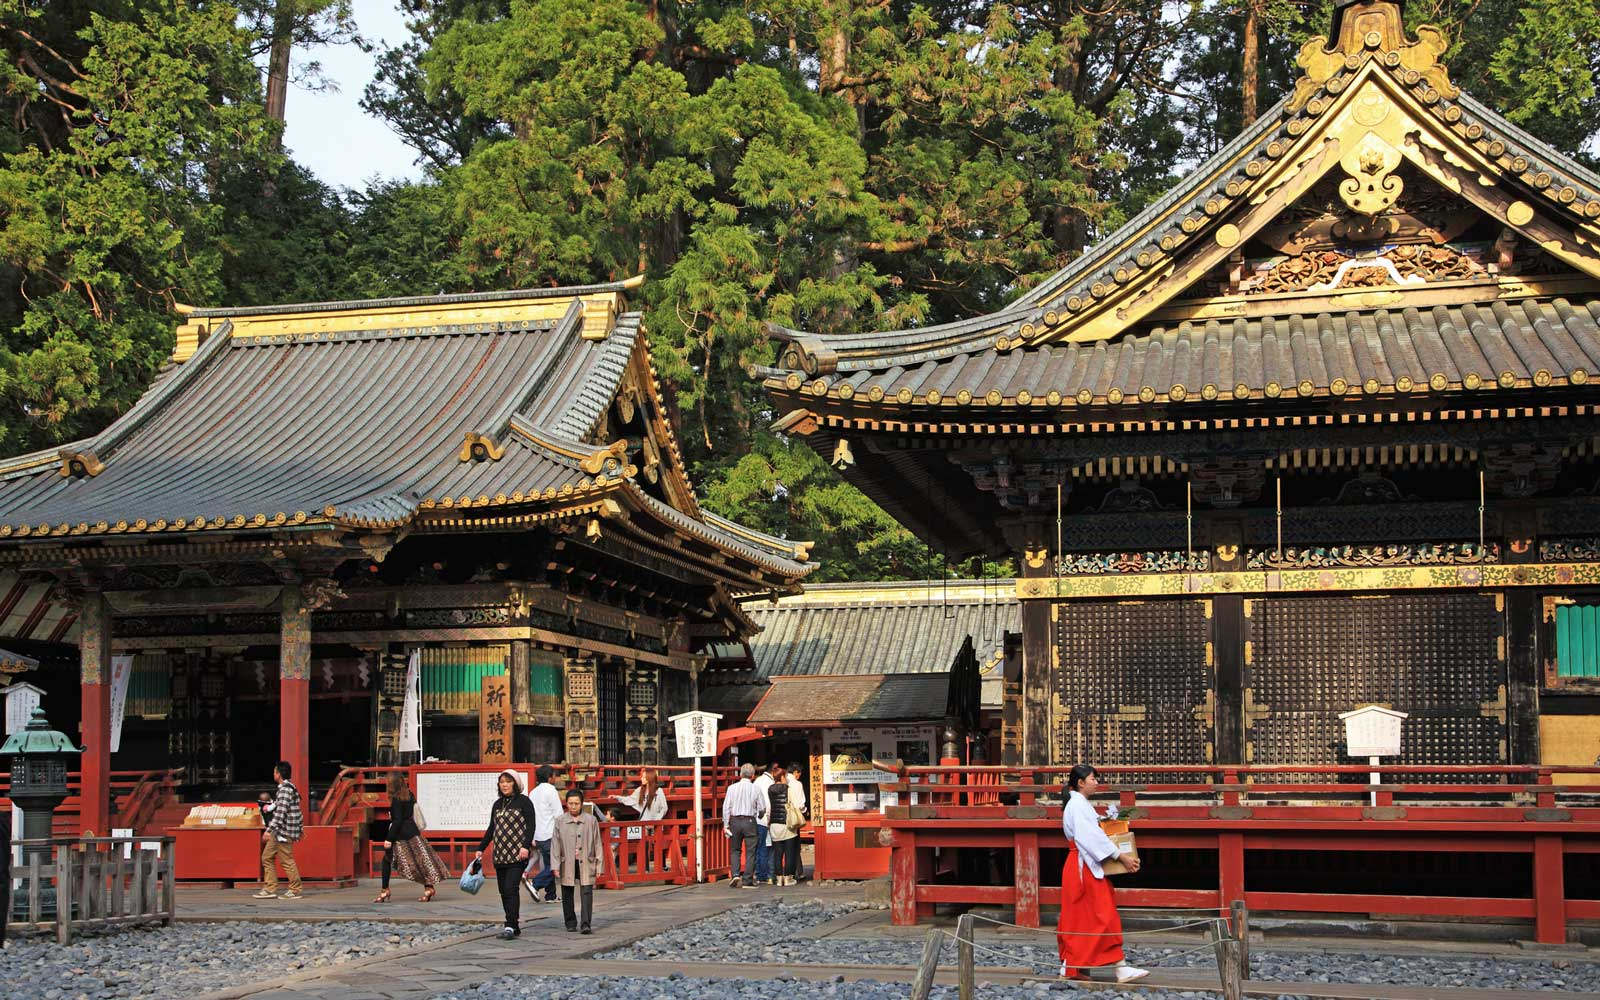 Historical Places in Japan Most Tourists Don't Know About